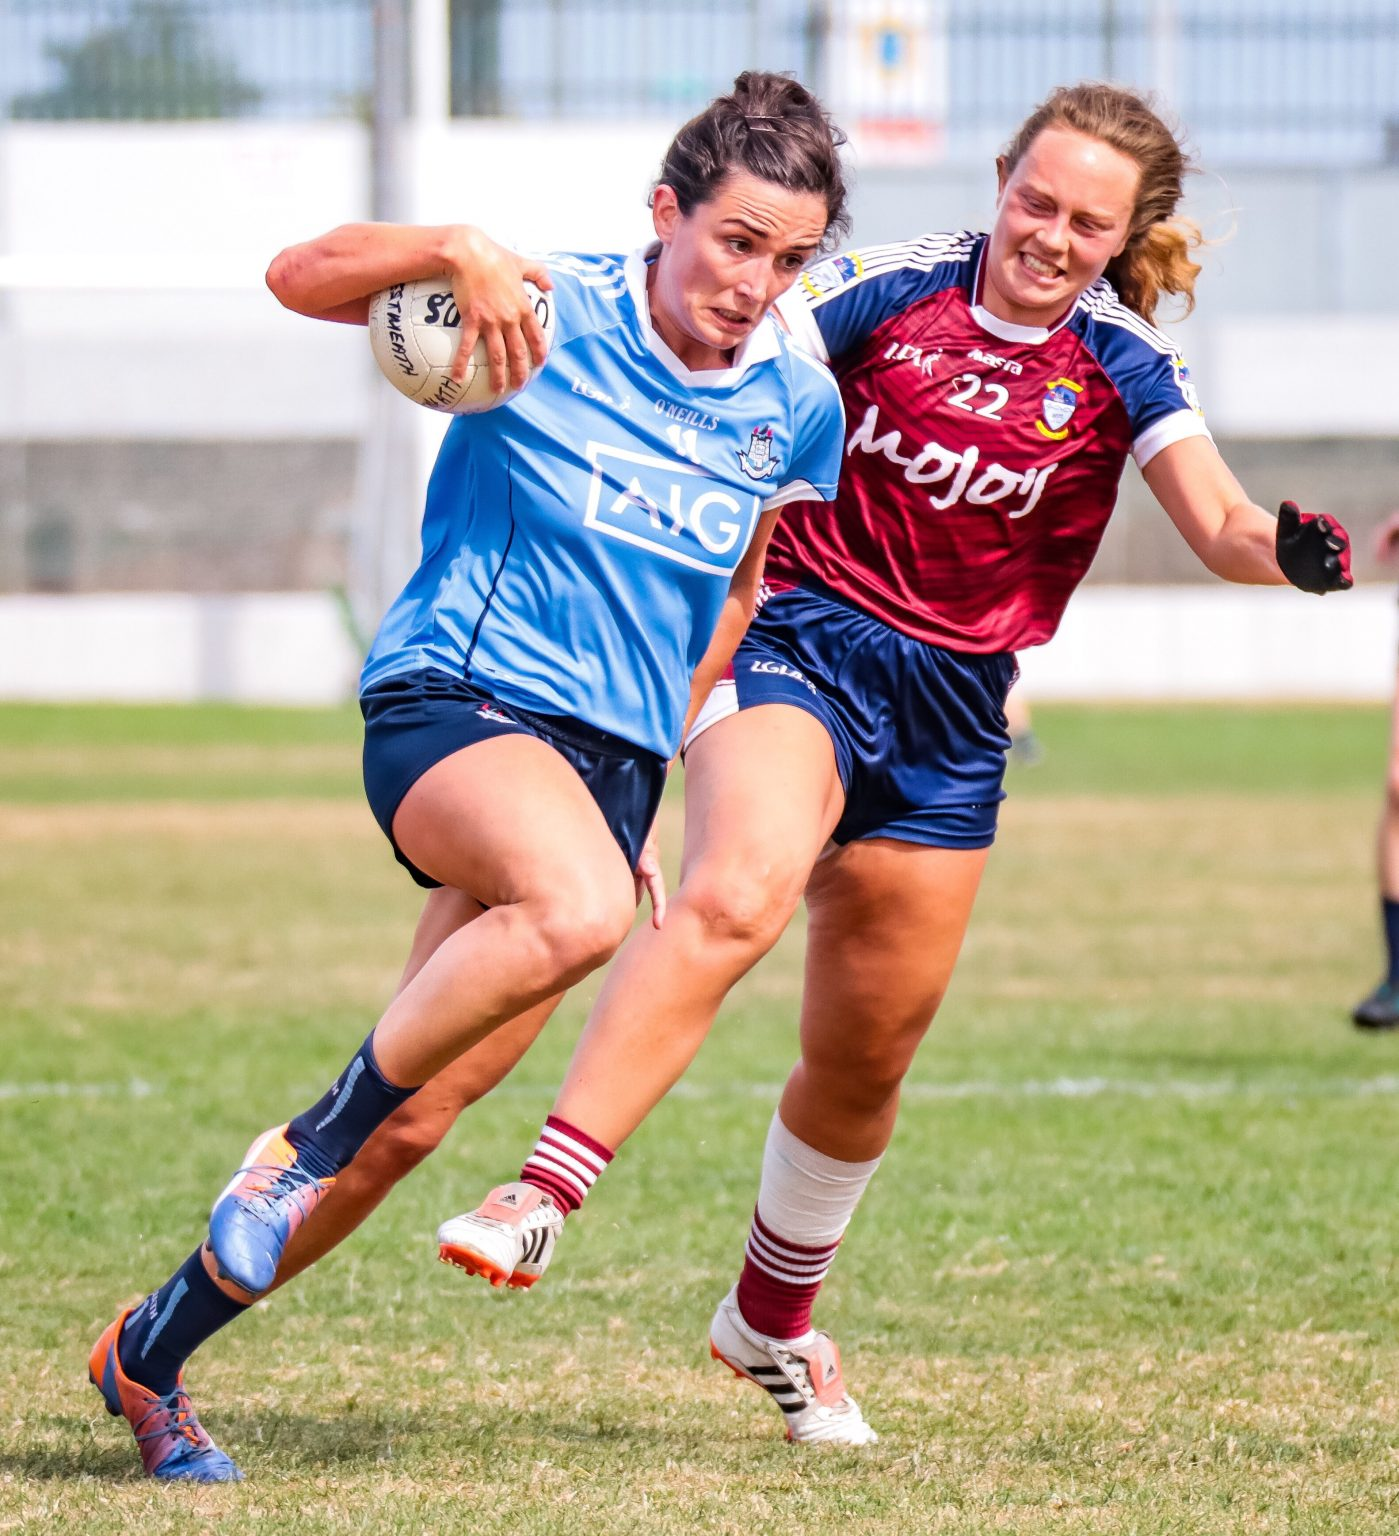 Dublin player in sky blue jersey with a white ball in her right hand charges past a Westmeath player in a Maroon Jersey